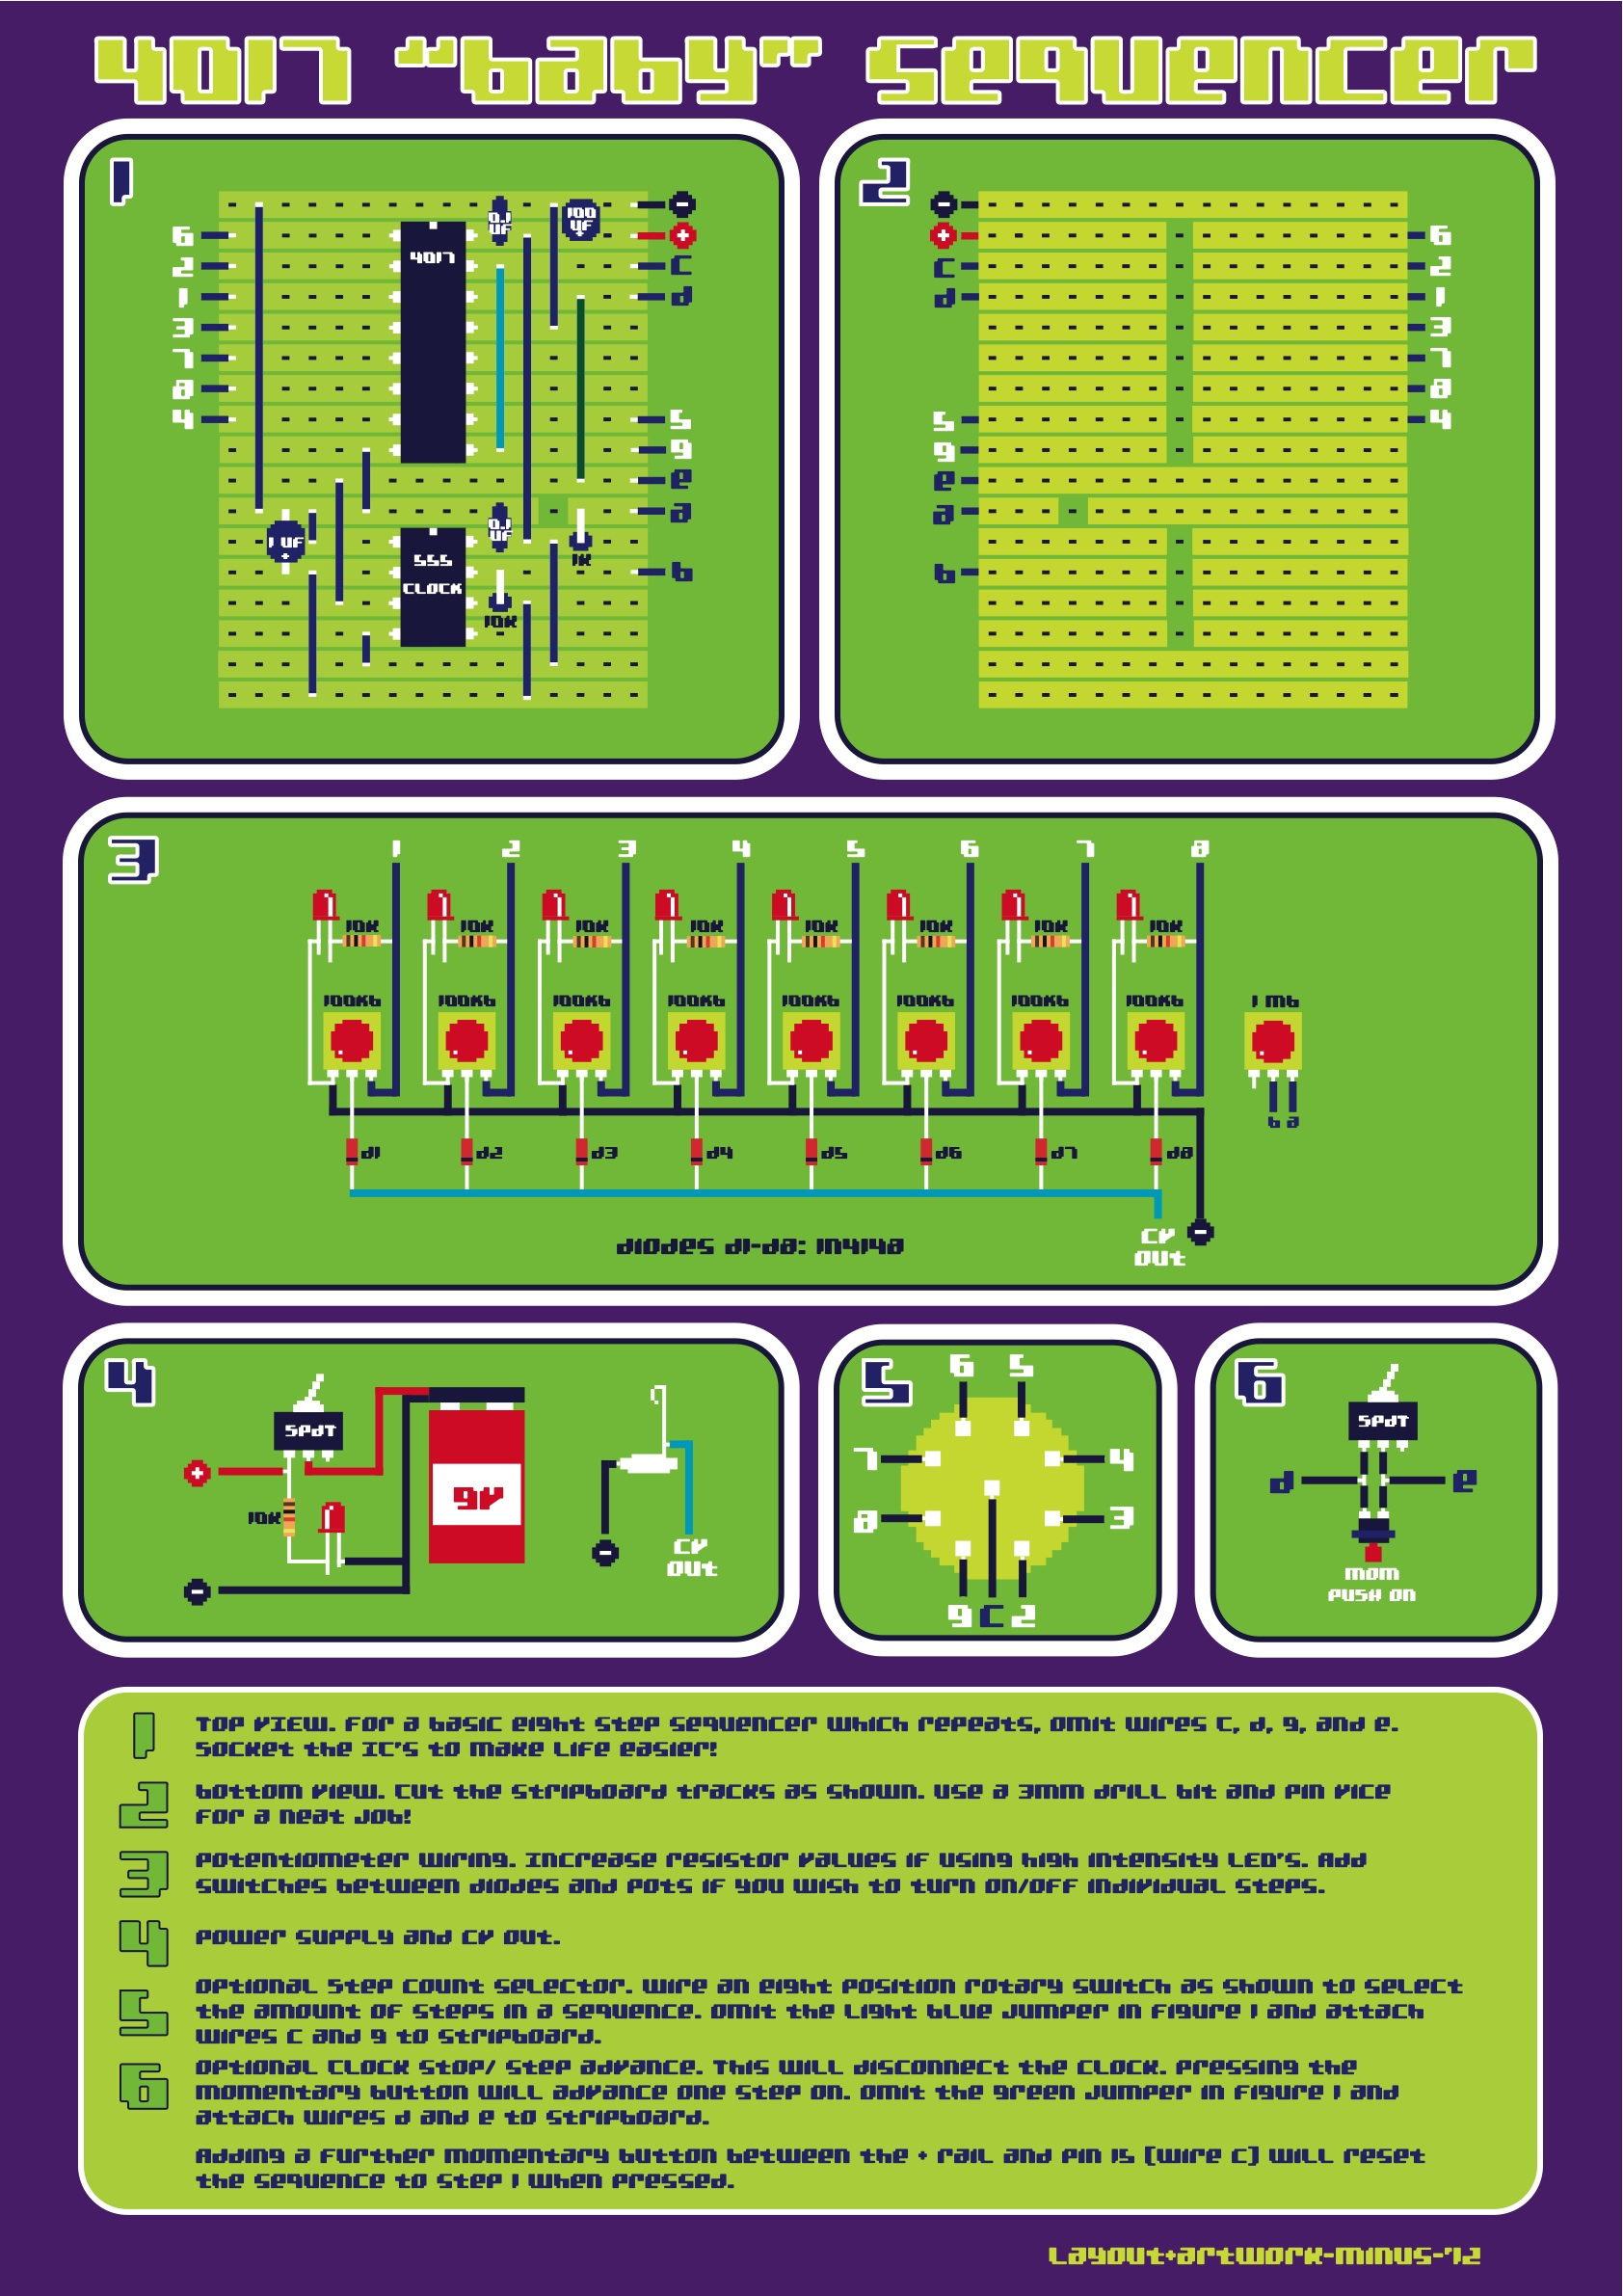 View Topic 4017 Baby Sequencer Stripboard Circuit Board Artwork And Breadboard Layout V1